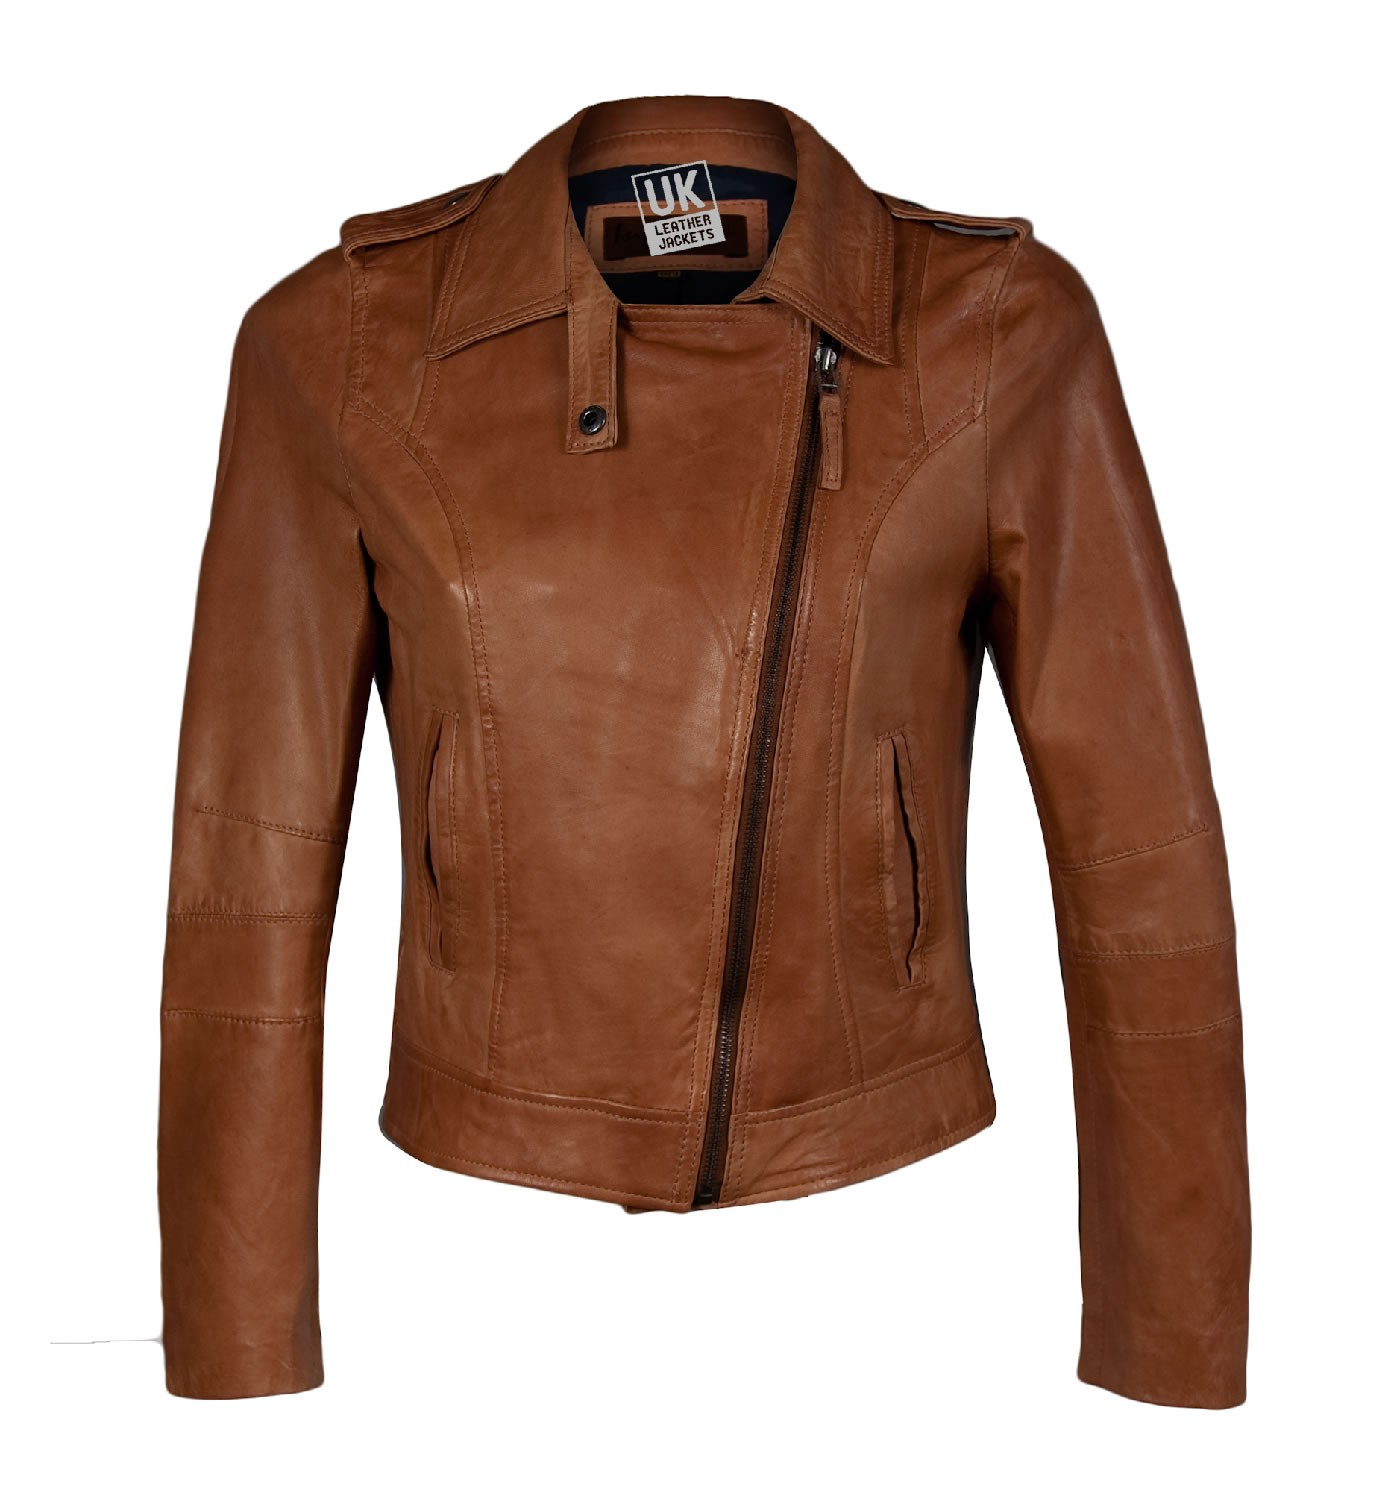 Collection Tan Leather Jacket Womens Pictures - Reikian